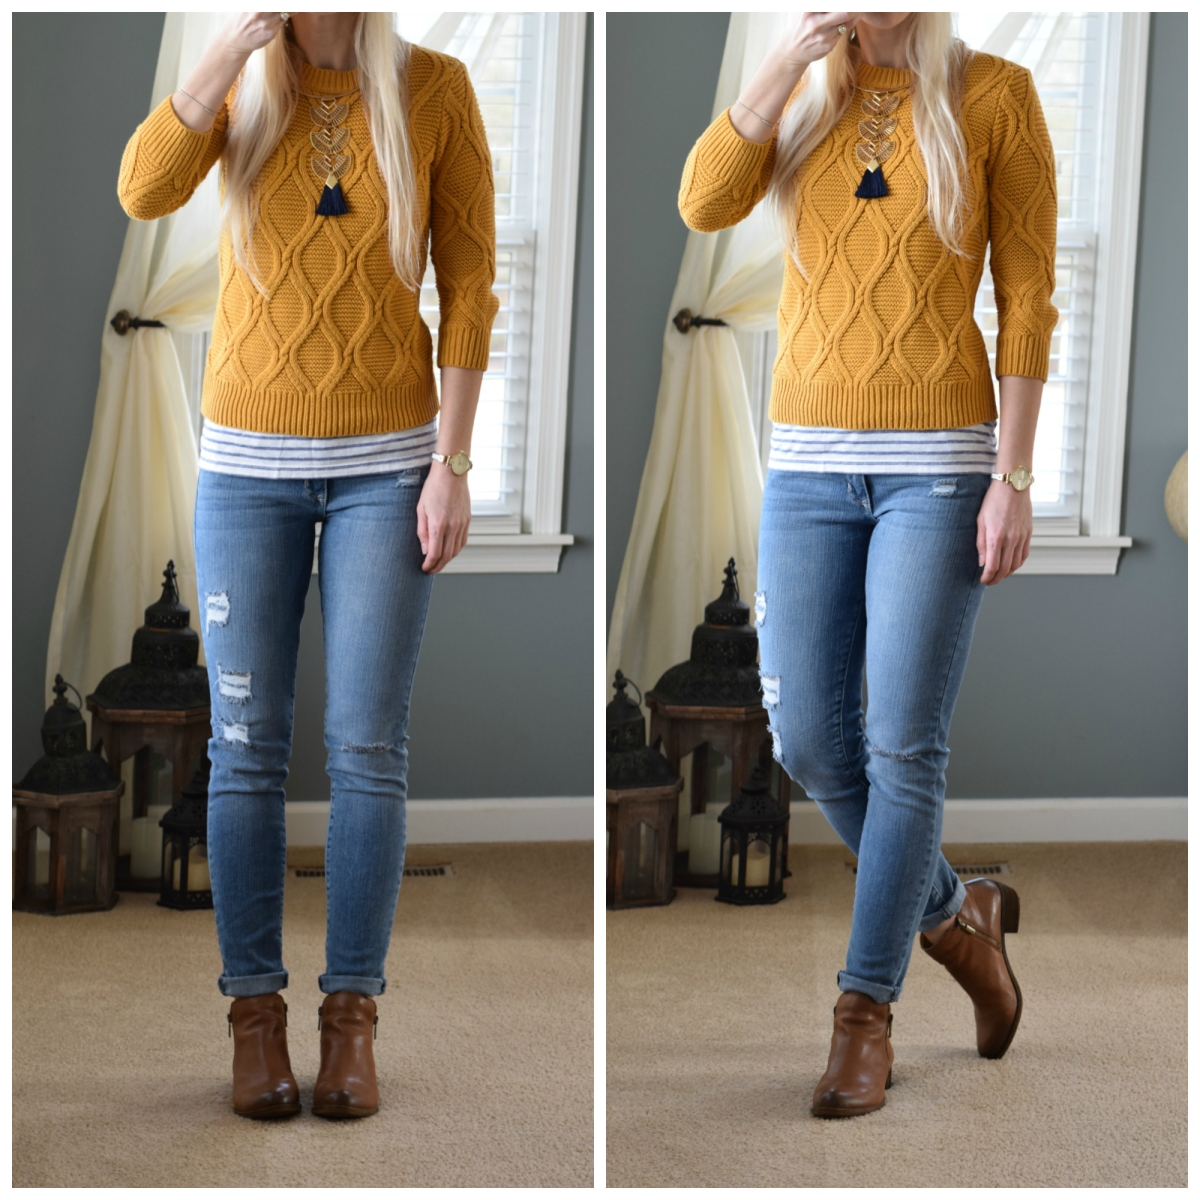 Yellow sweater, navy tassel statement necklace, and ankle boots